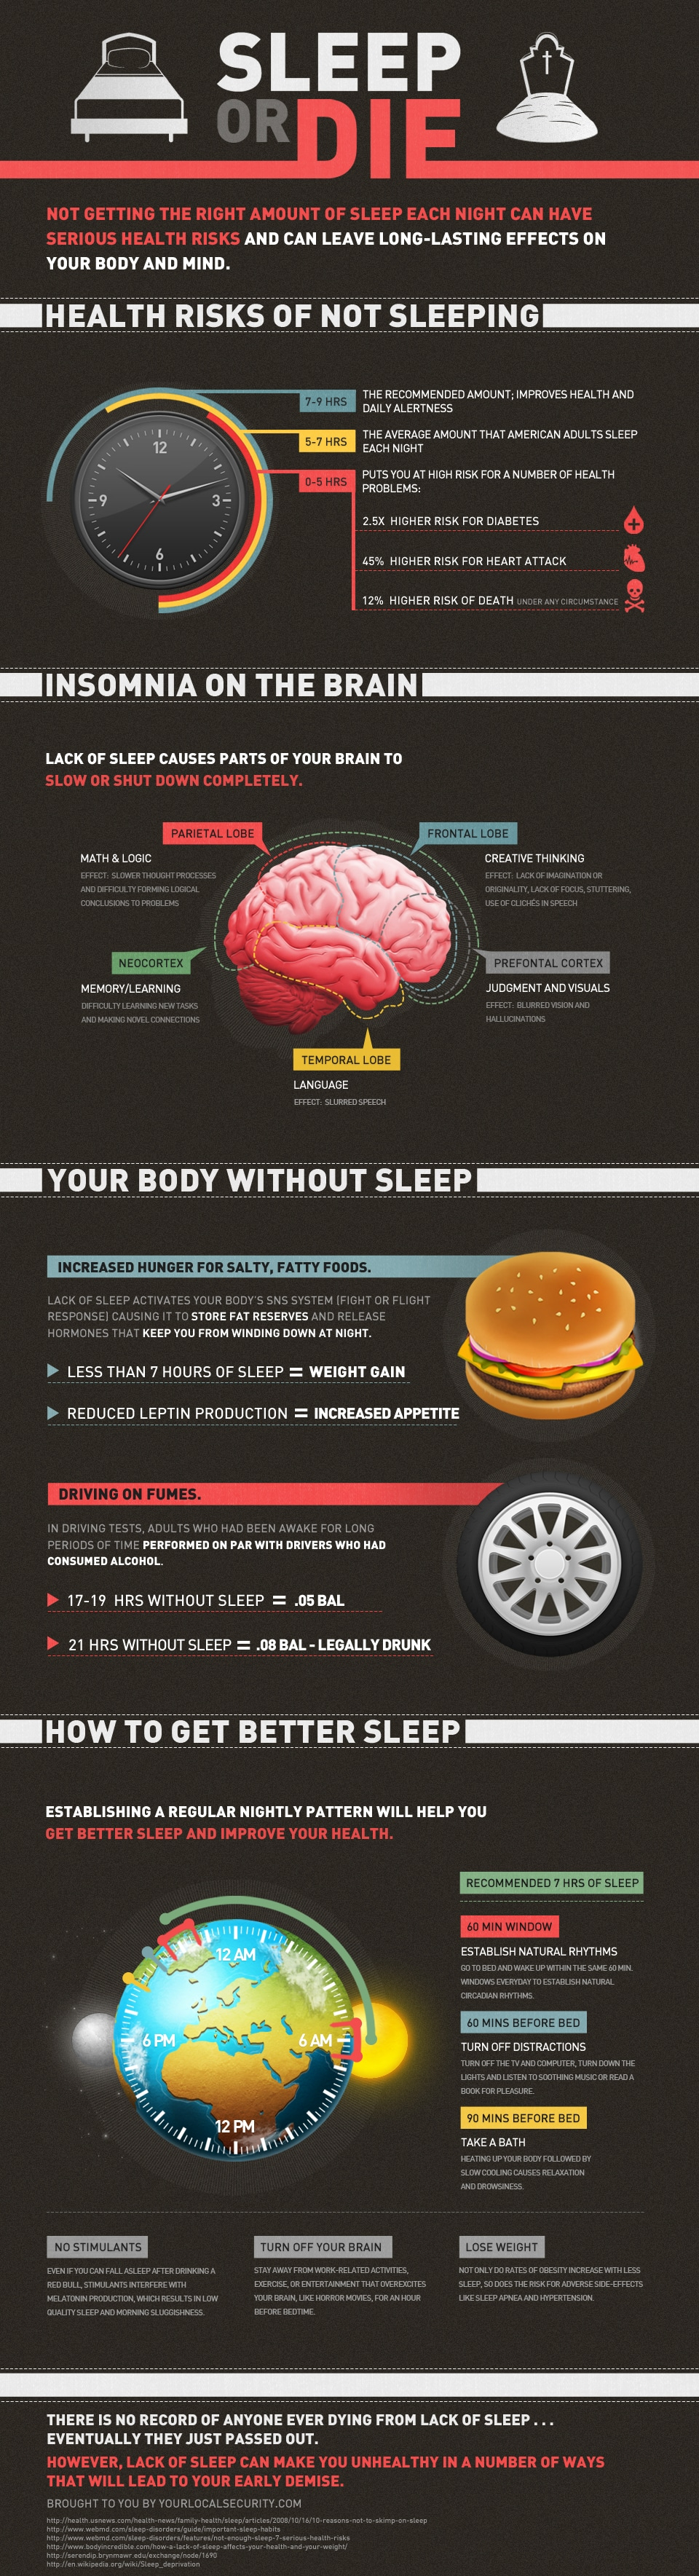 sleep-or-die-guide-infographic